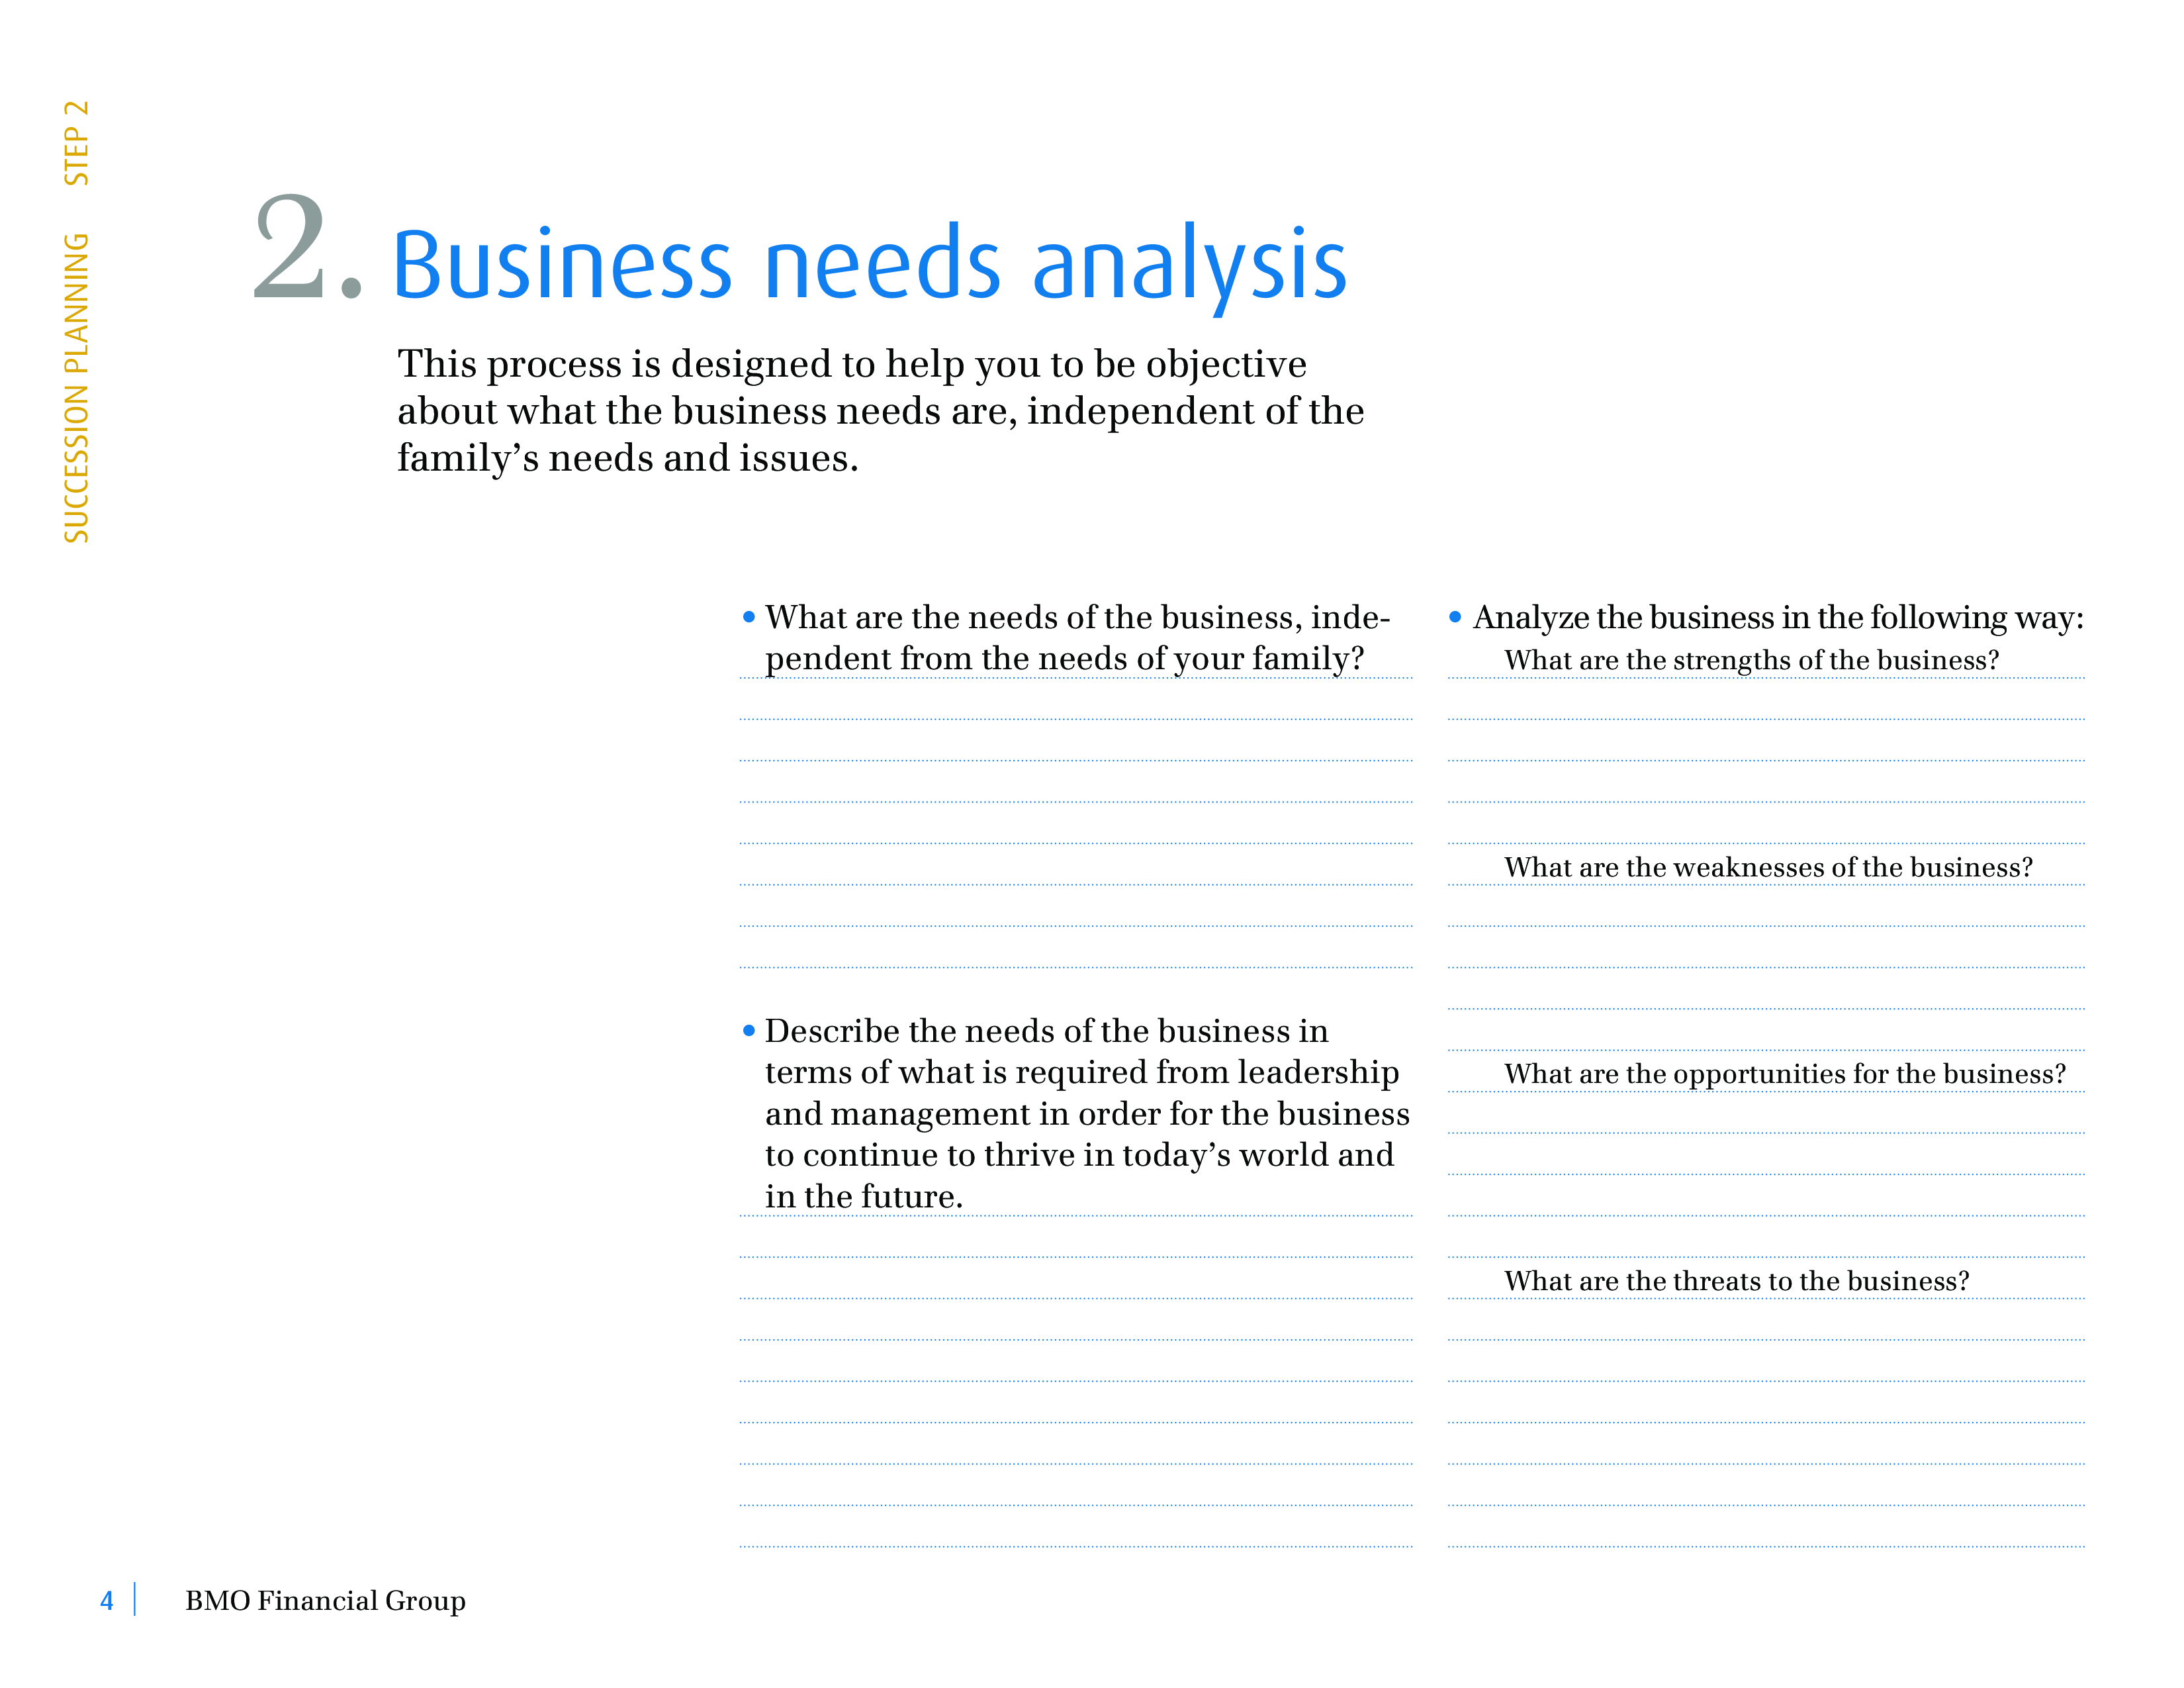 Free business needs analysis templates at allbusinesstemplates business needs analysis main image download template fbccfo Images